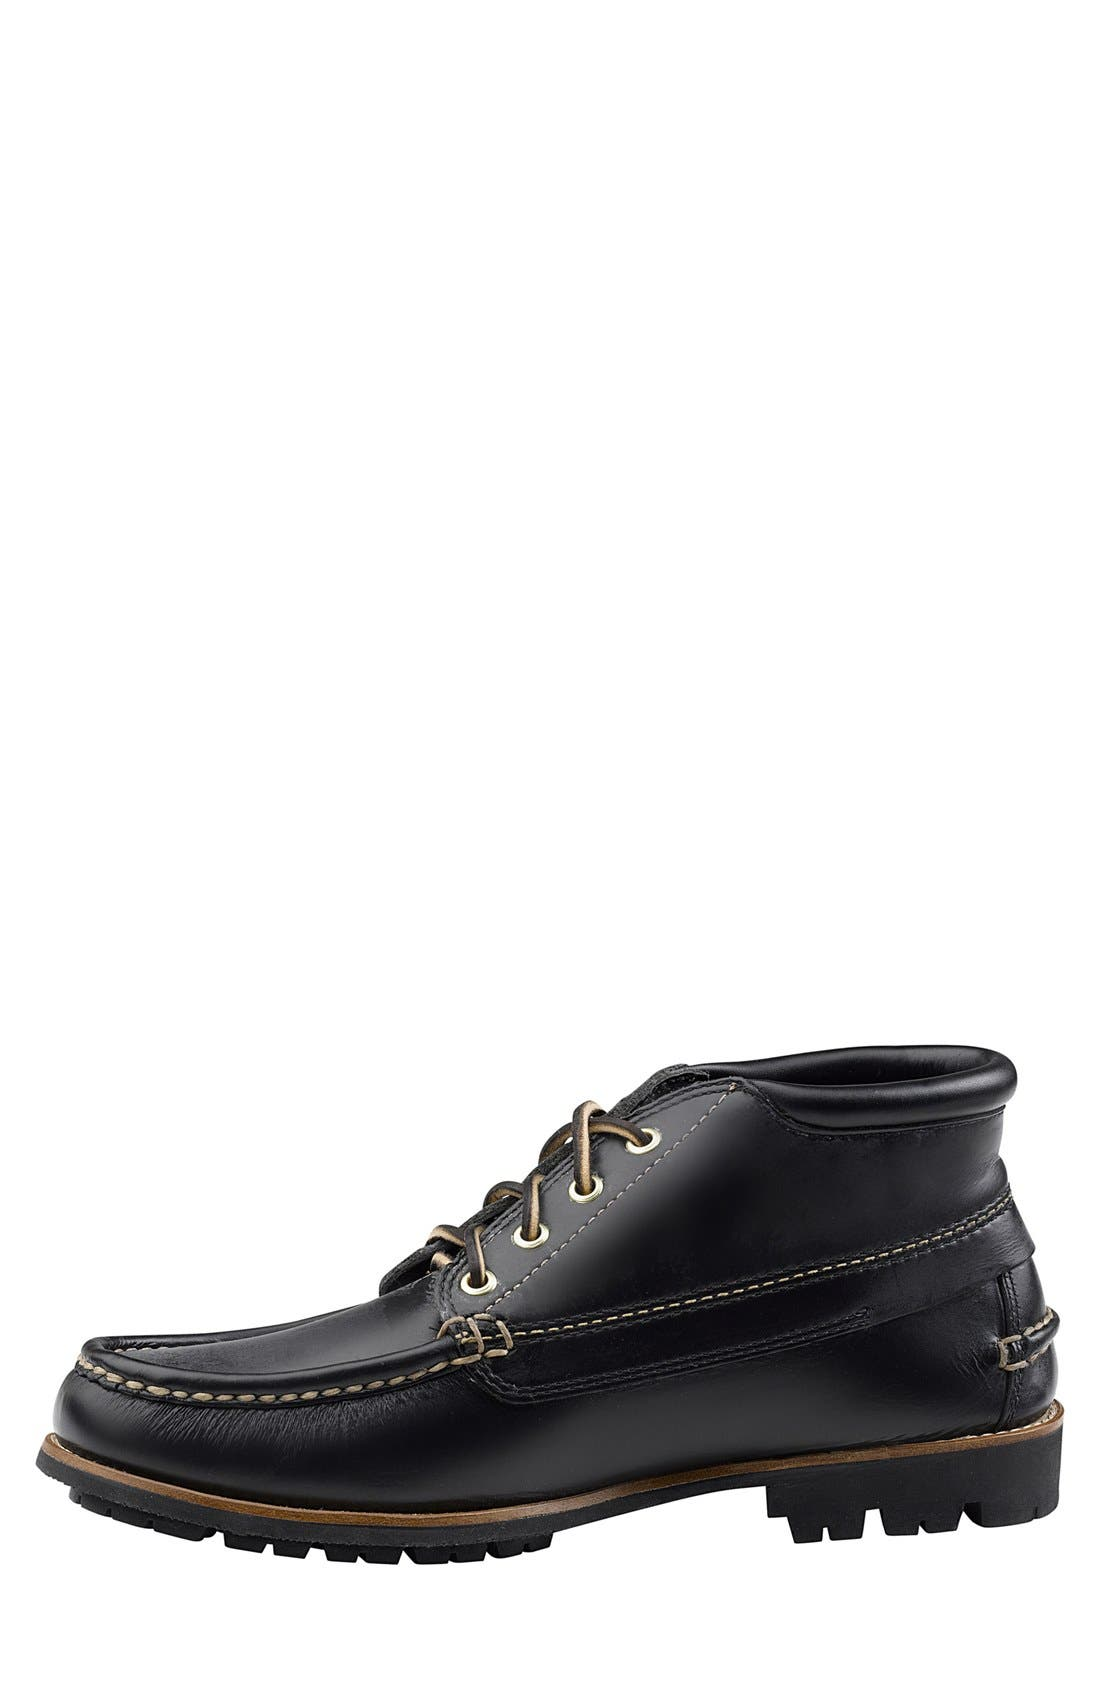 'Abbott' Chukka Boot,                             Alternate thumbnail 7, color,